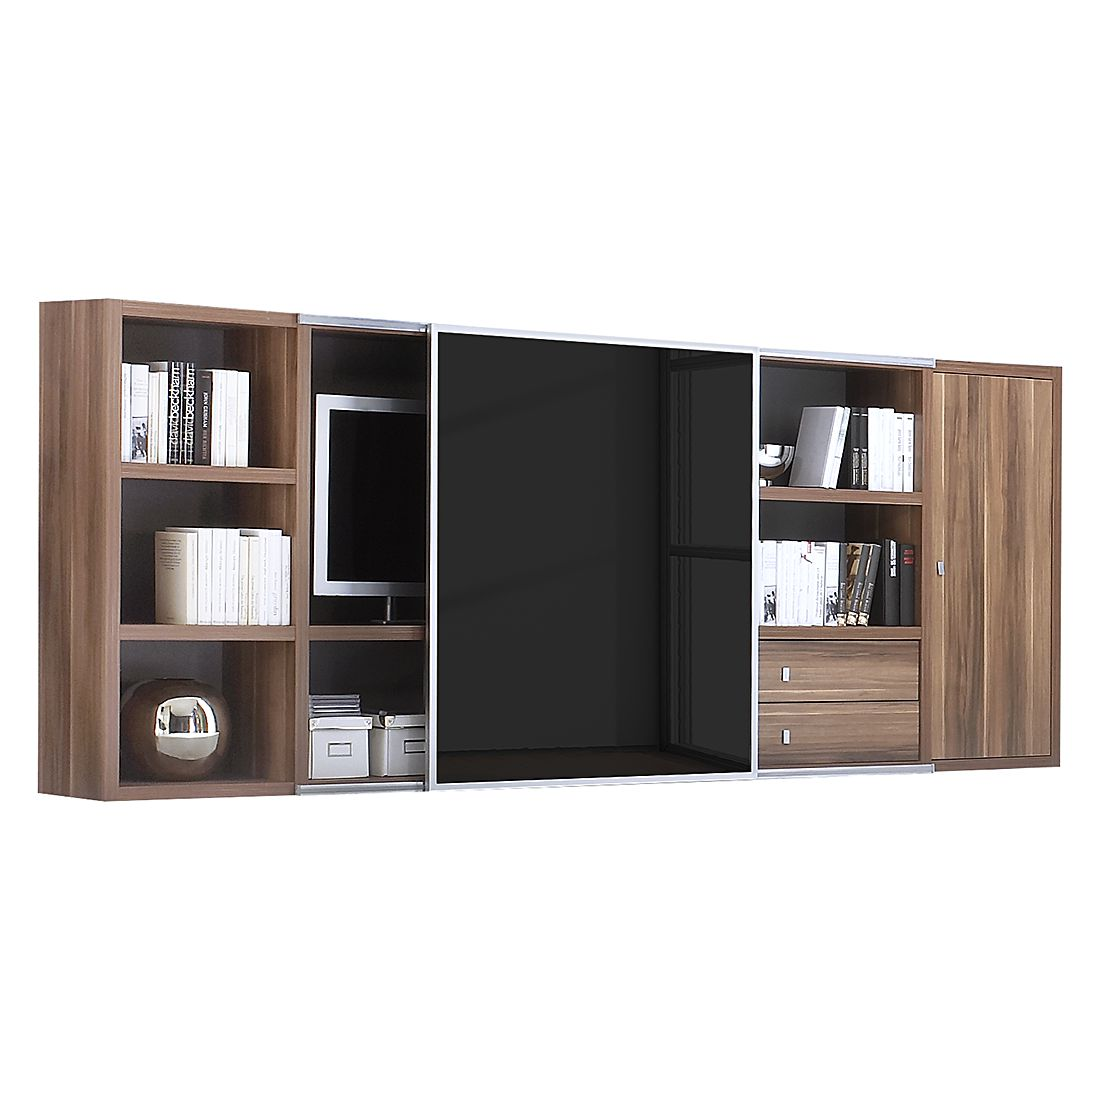 sideboard baltimore walnuss preisvergleich die besten angebote online kaufen. Black Bedroom Furniture Sets. Home Design Ideas